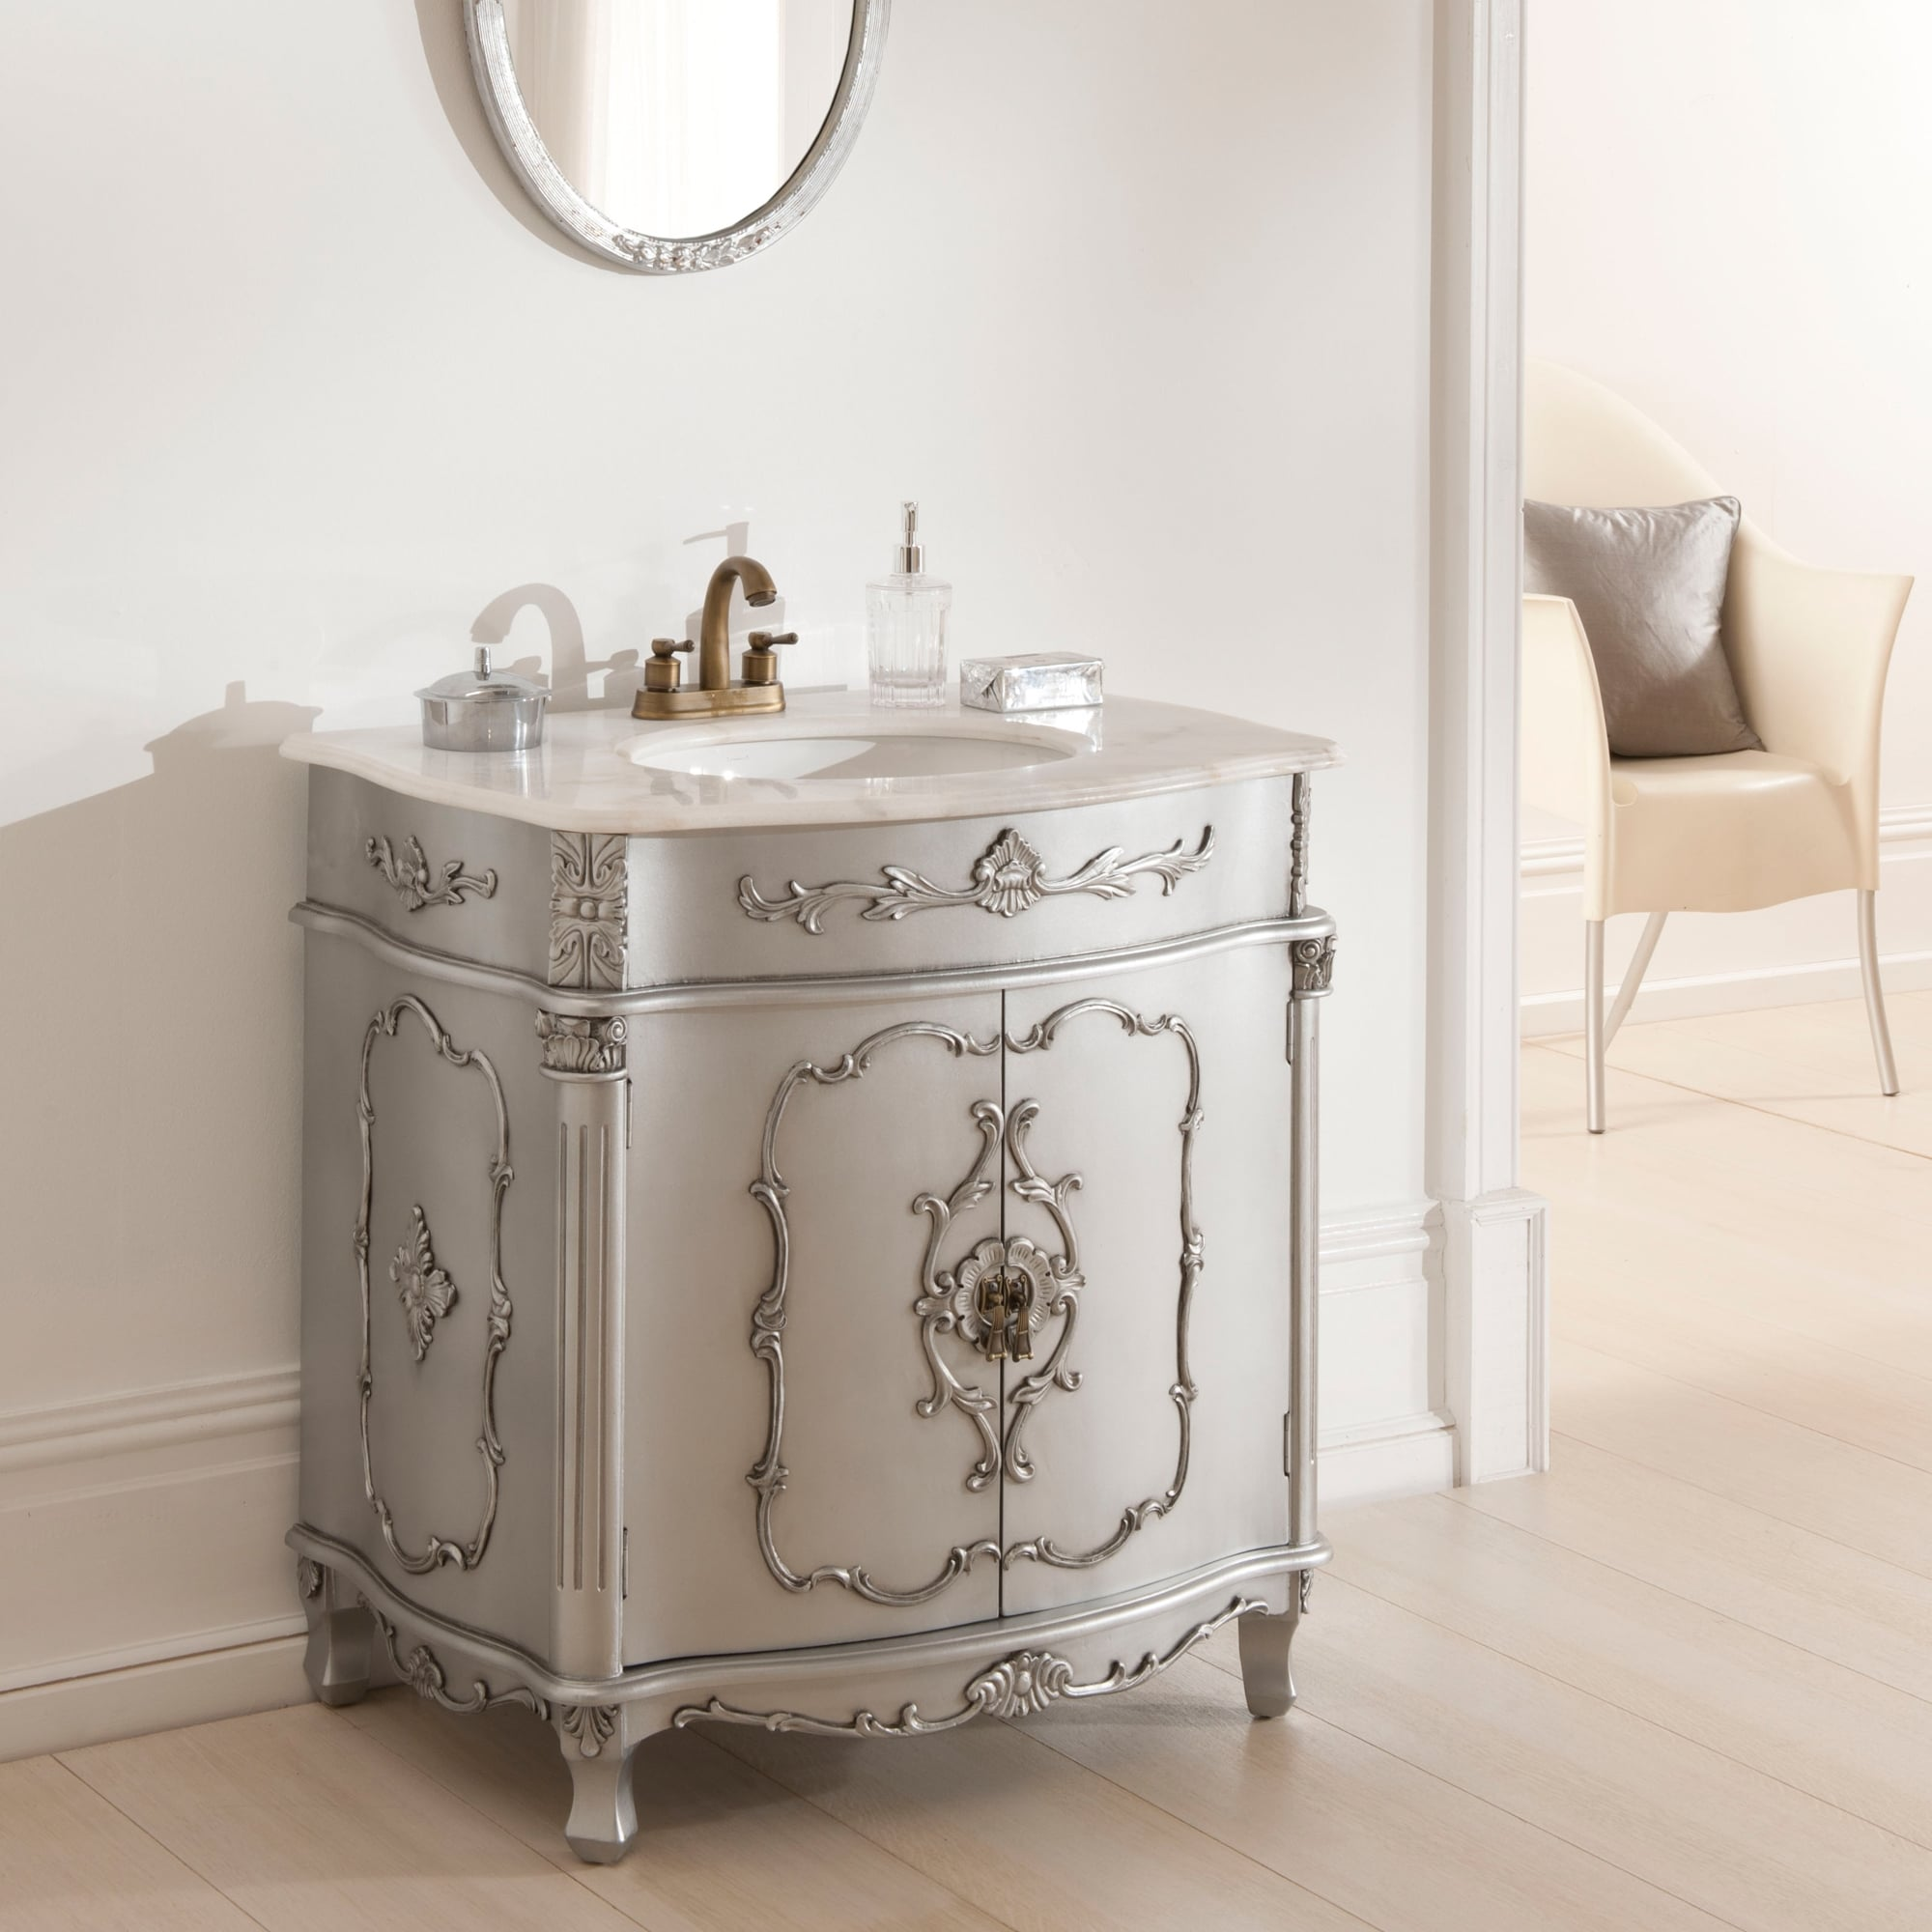 Antique French Vanity Unit is a wonderful addition to our ...